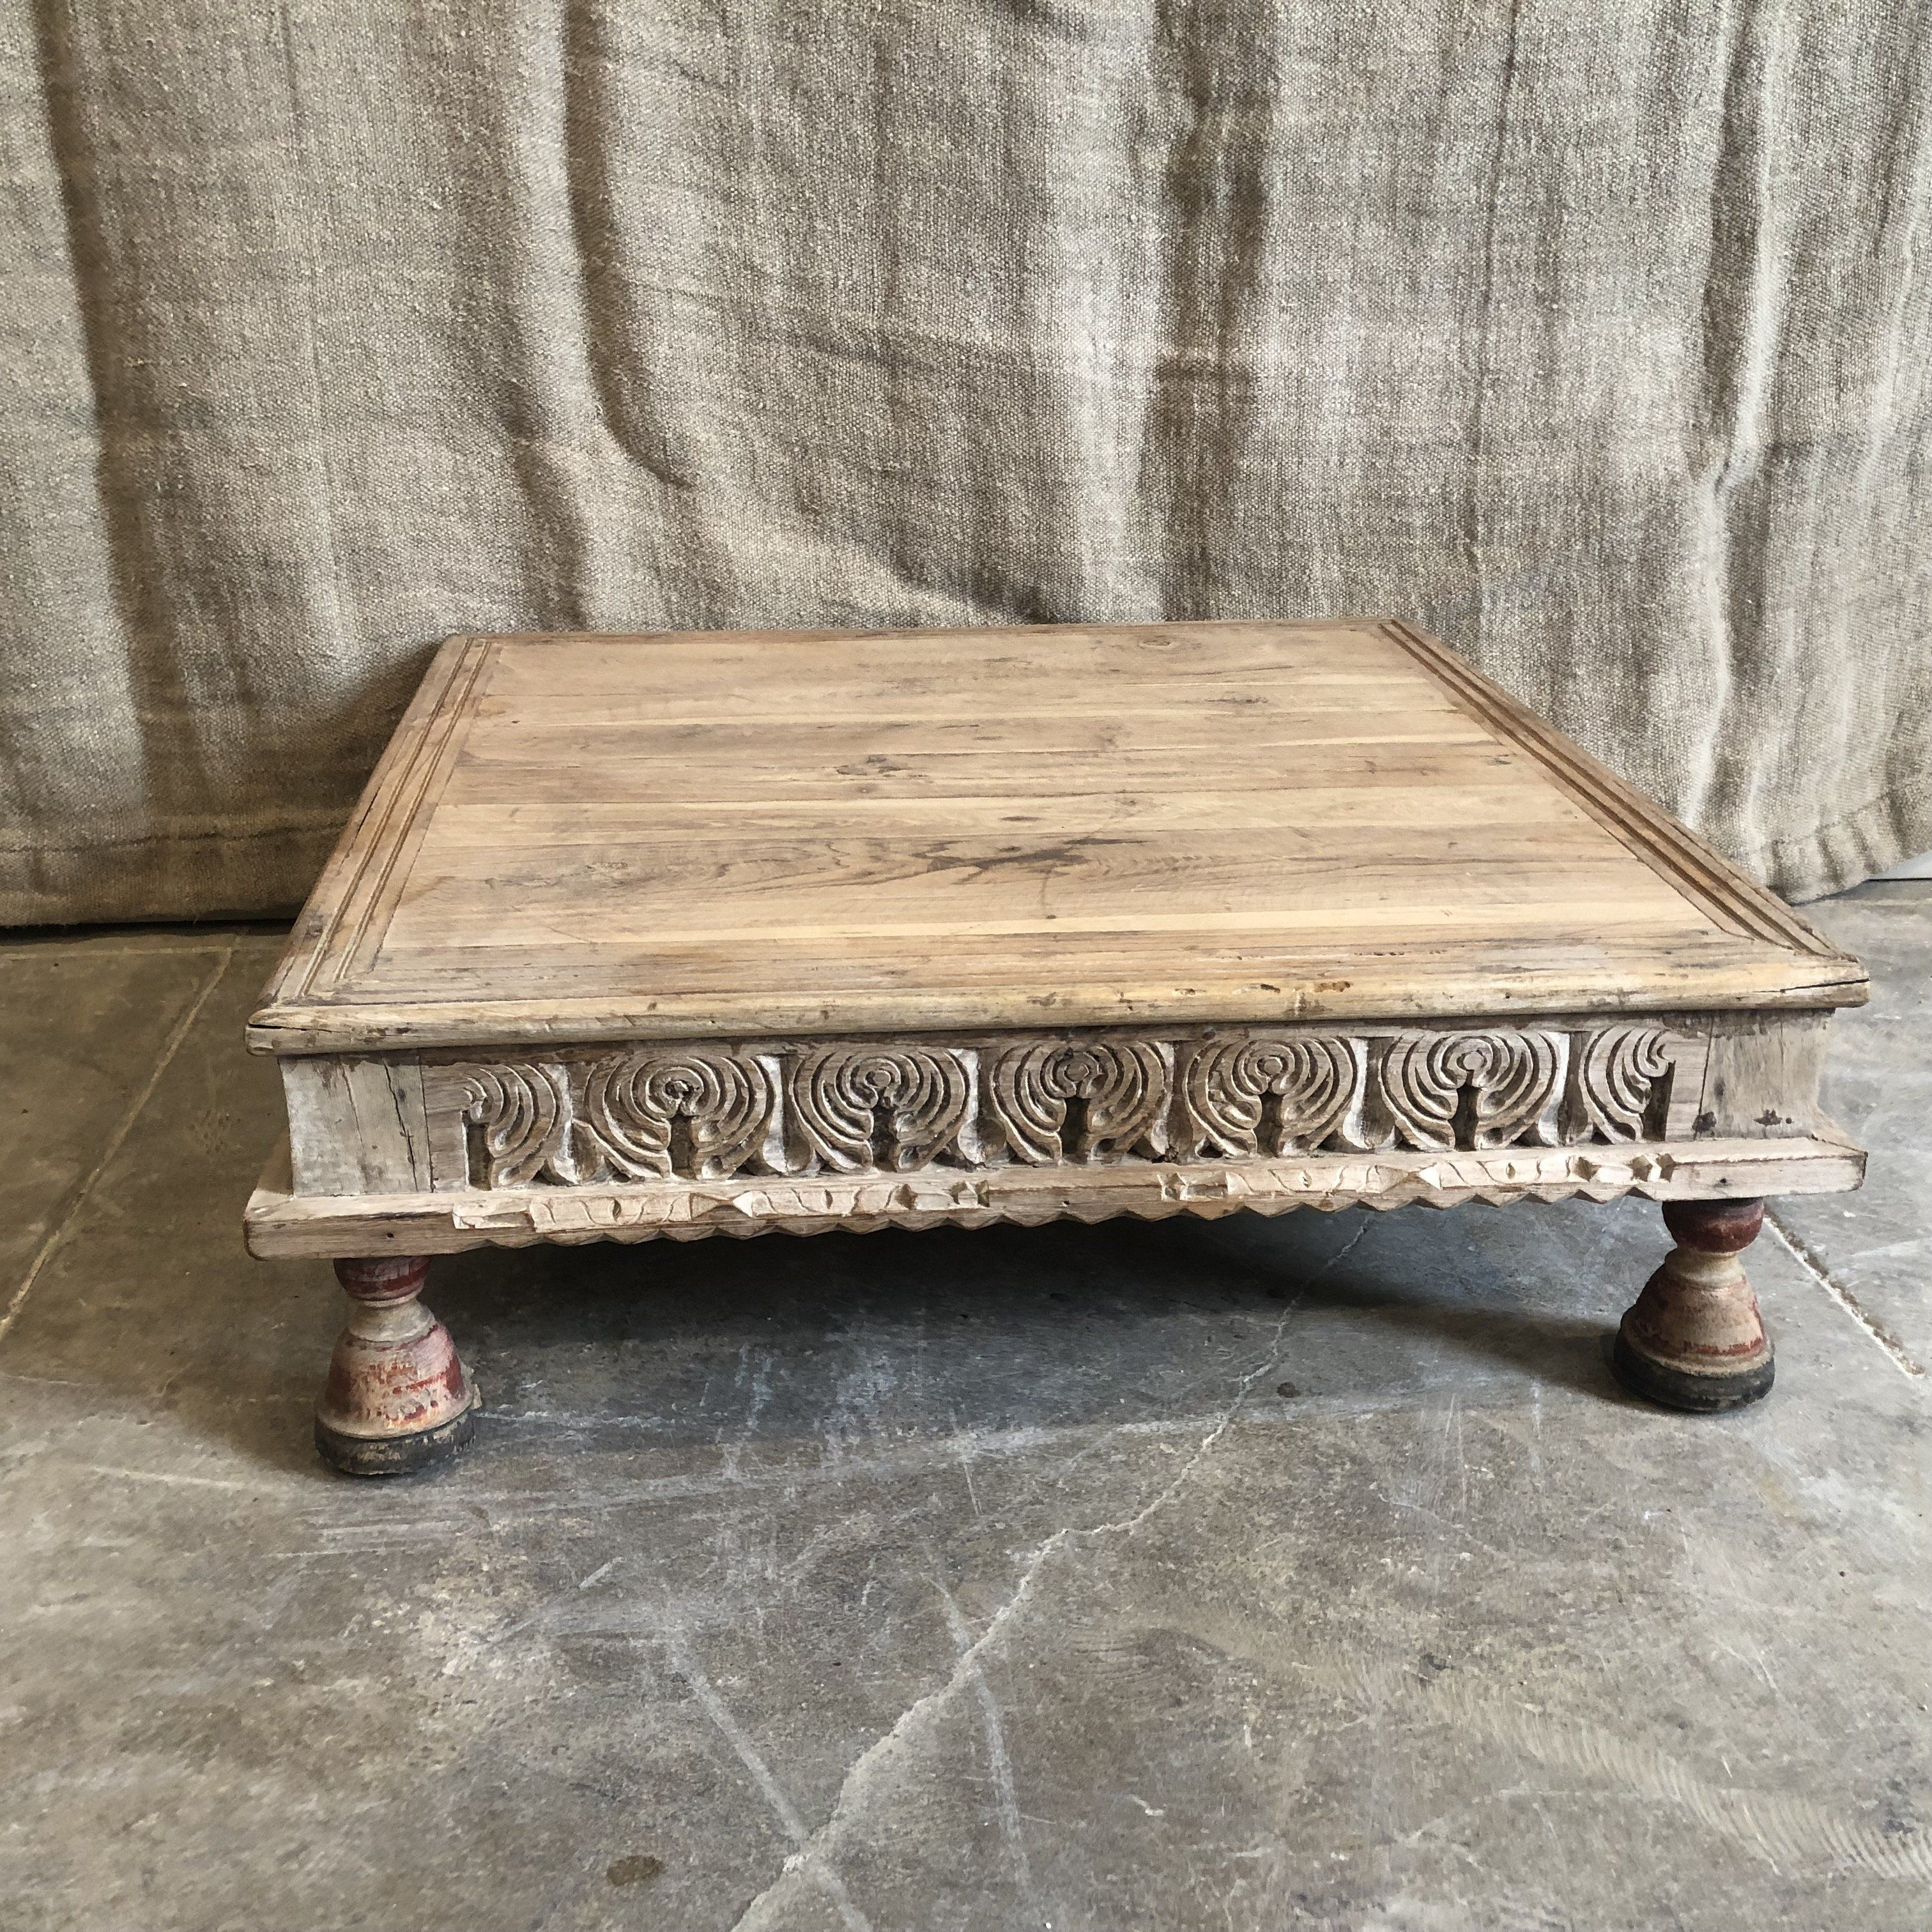 Vintage Carved Wood Bajot In 2021 Diy Furniture Accessories White Washed Furniture Coffee Table Makeover [ 3024 x 3024 Pixel ]